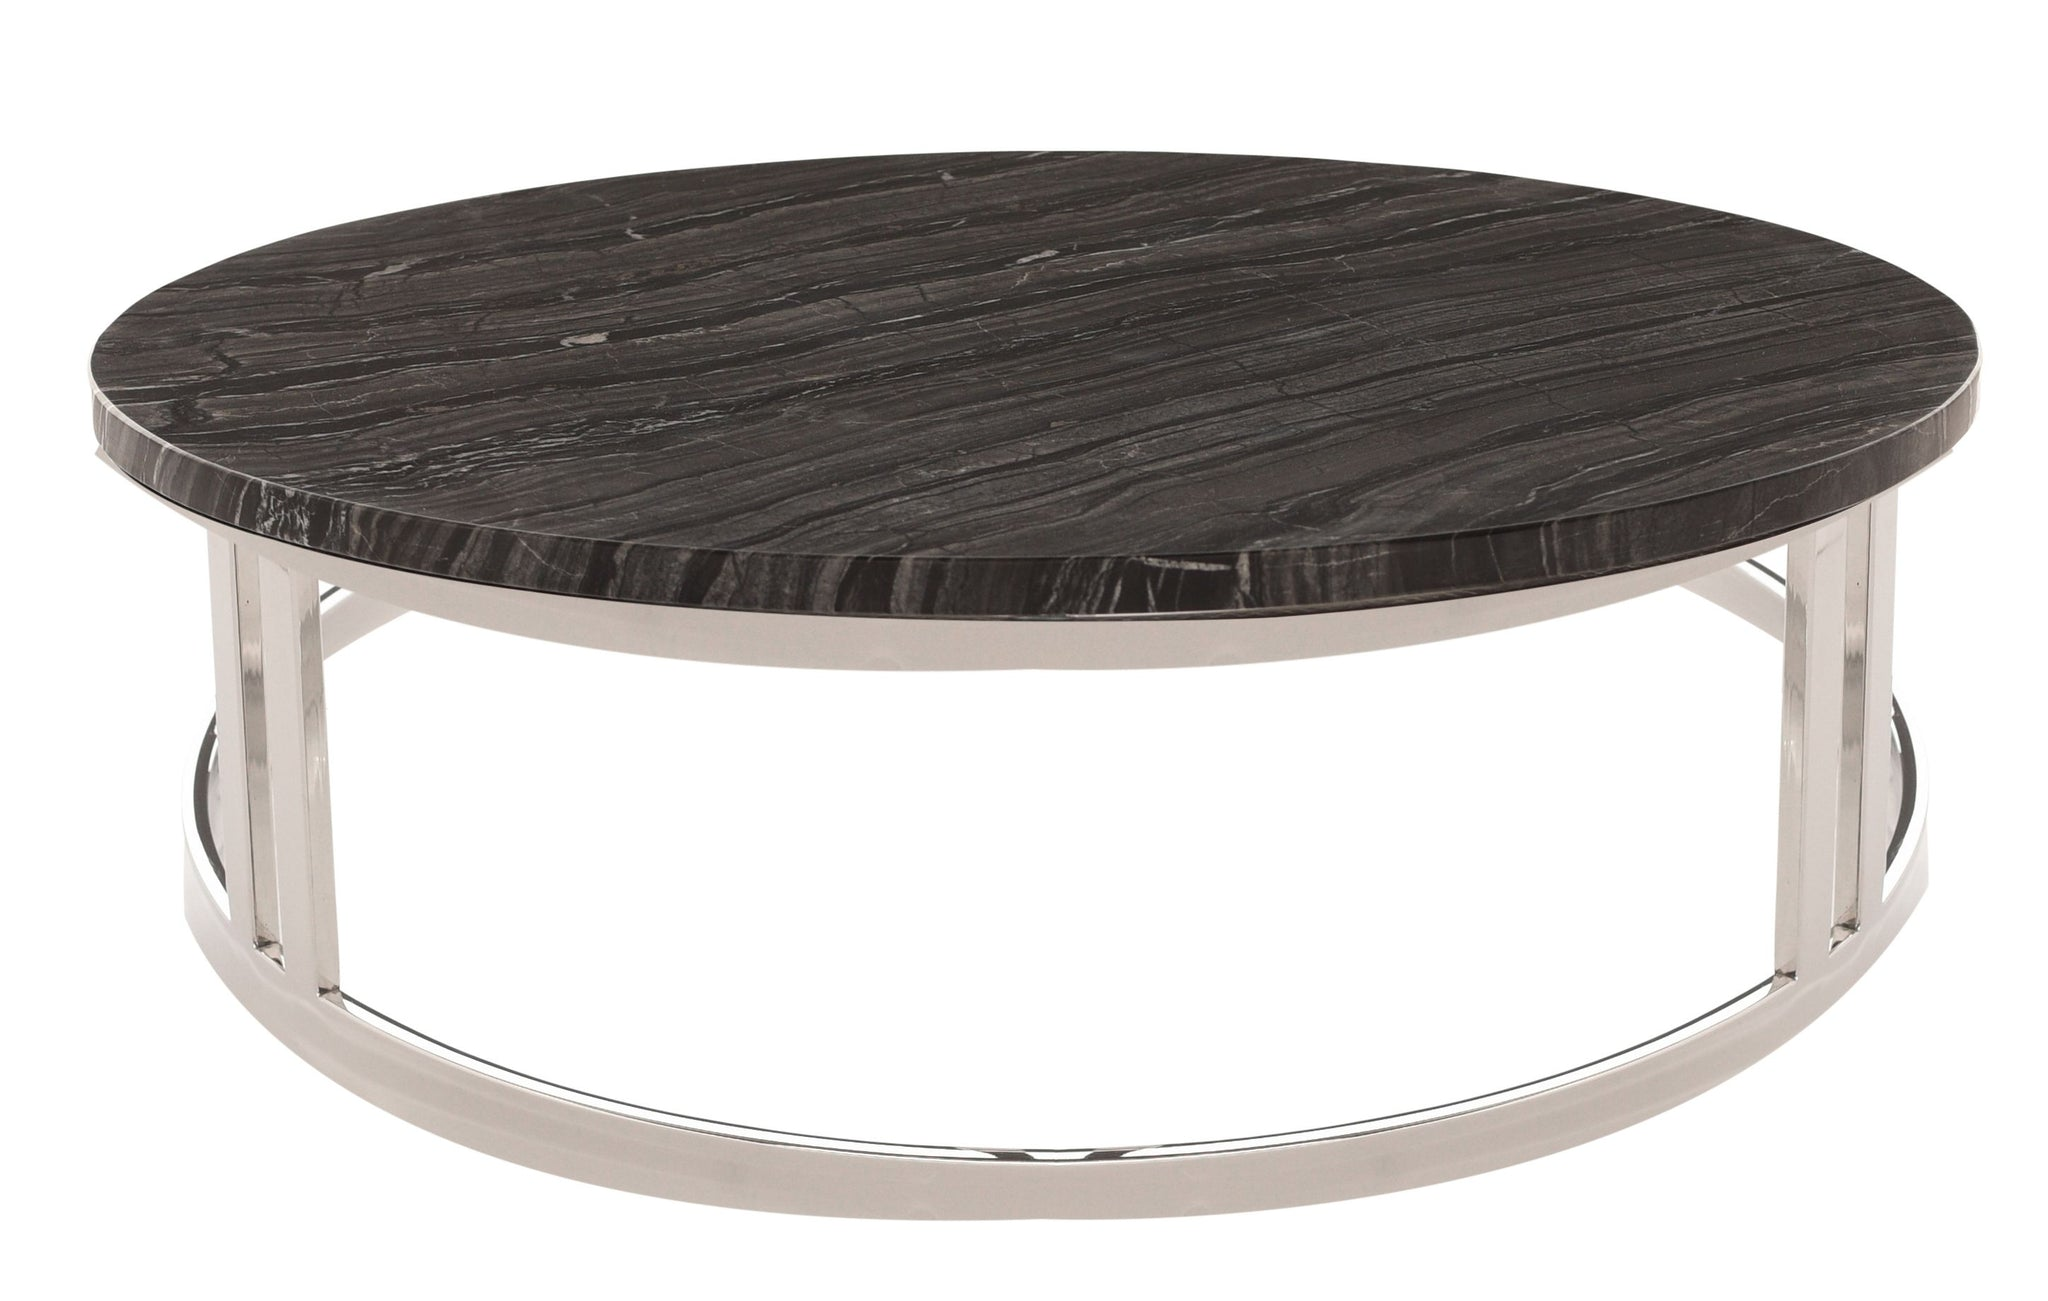 Nicola Coffee Table In Black Marble Polished Silver Design By - Nuevo marble coffee table